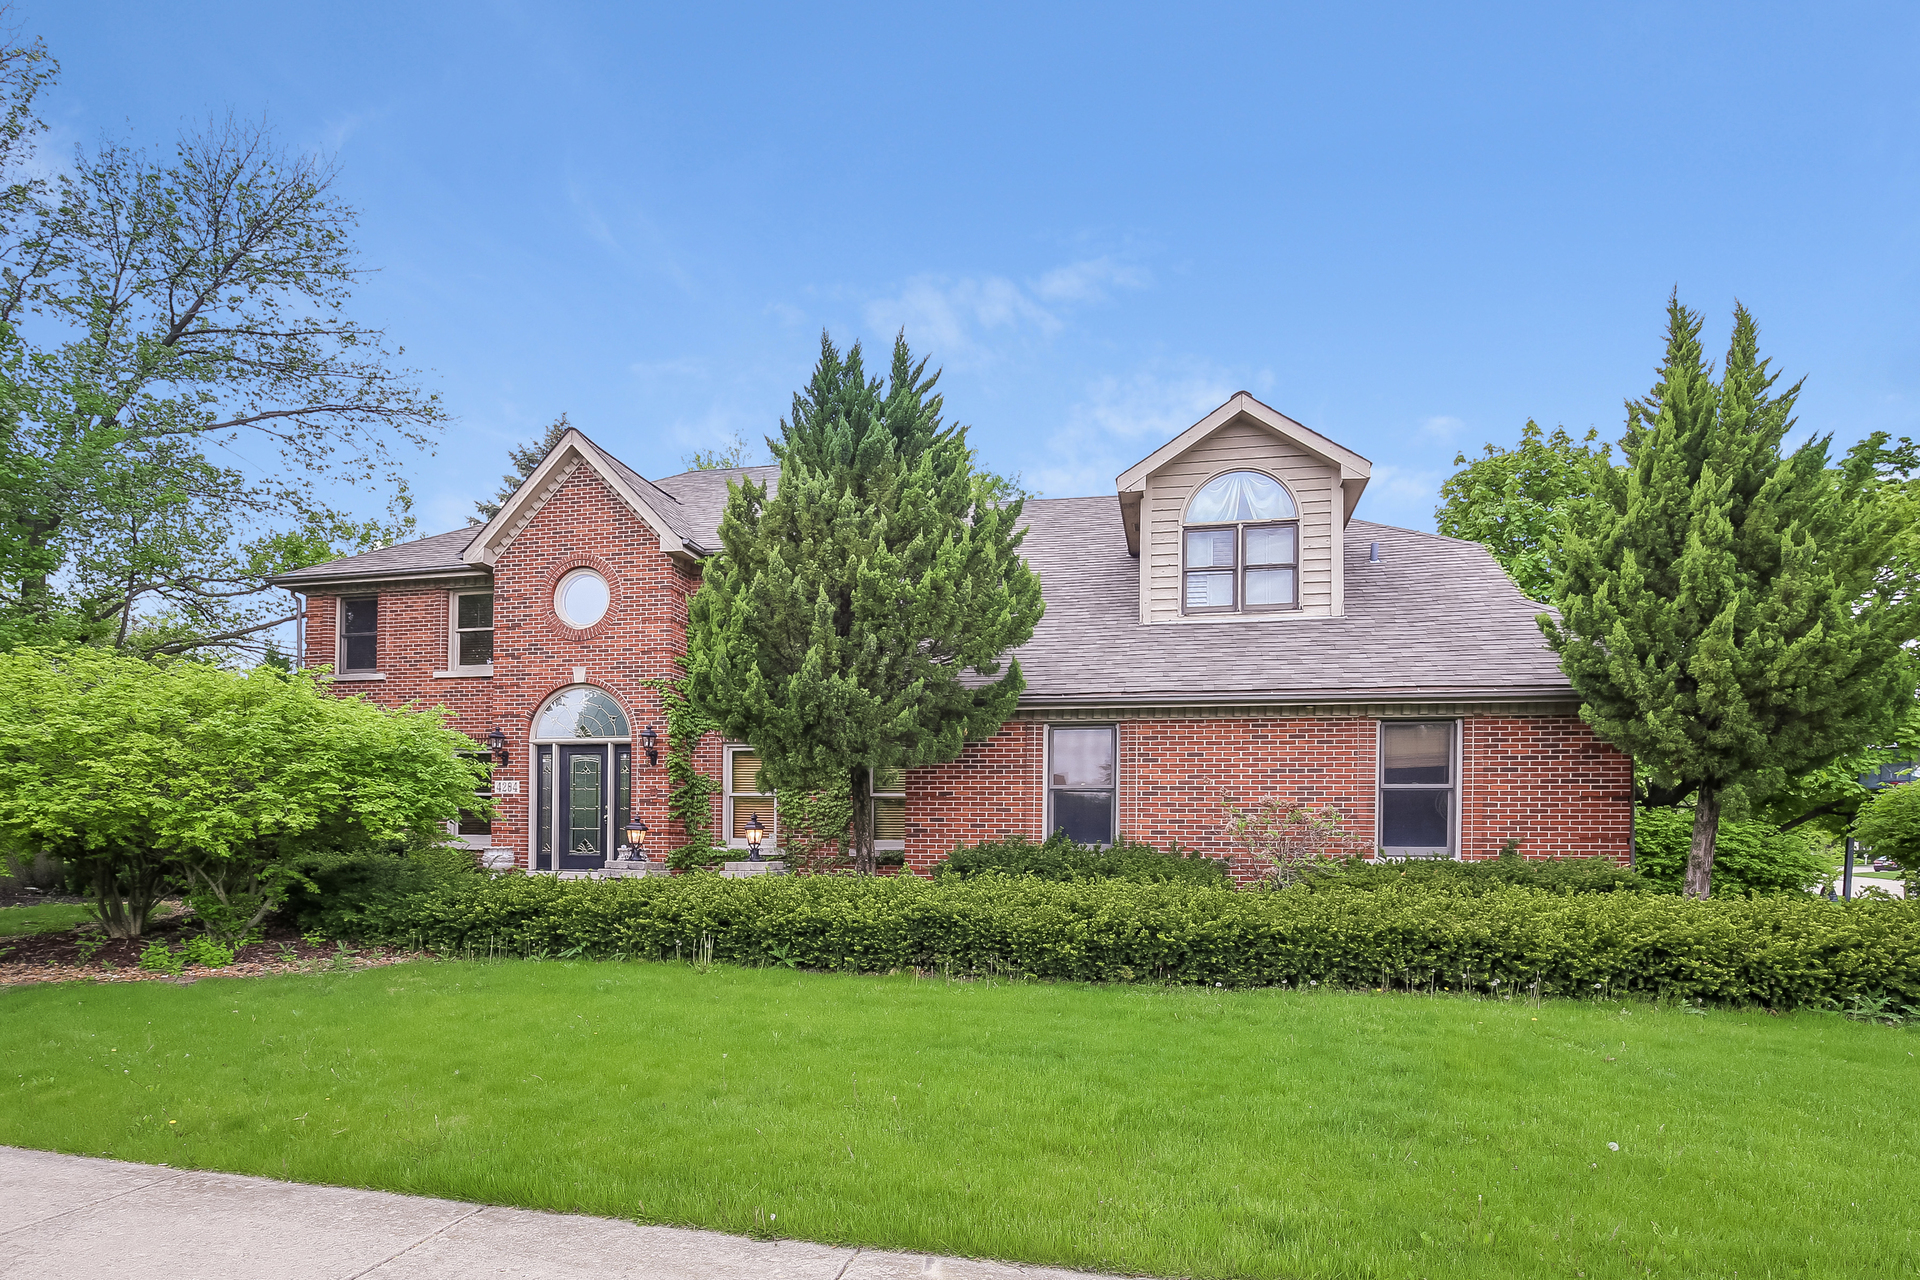 Photo of 4204 White Eagle Drive, Naperville, IL 60564